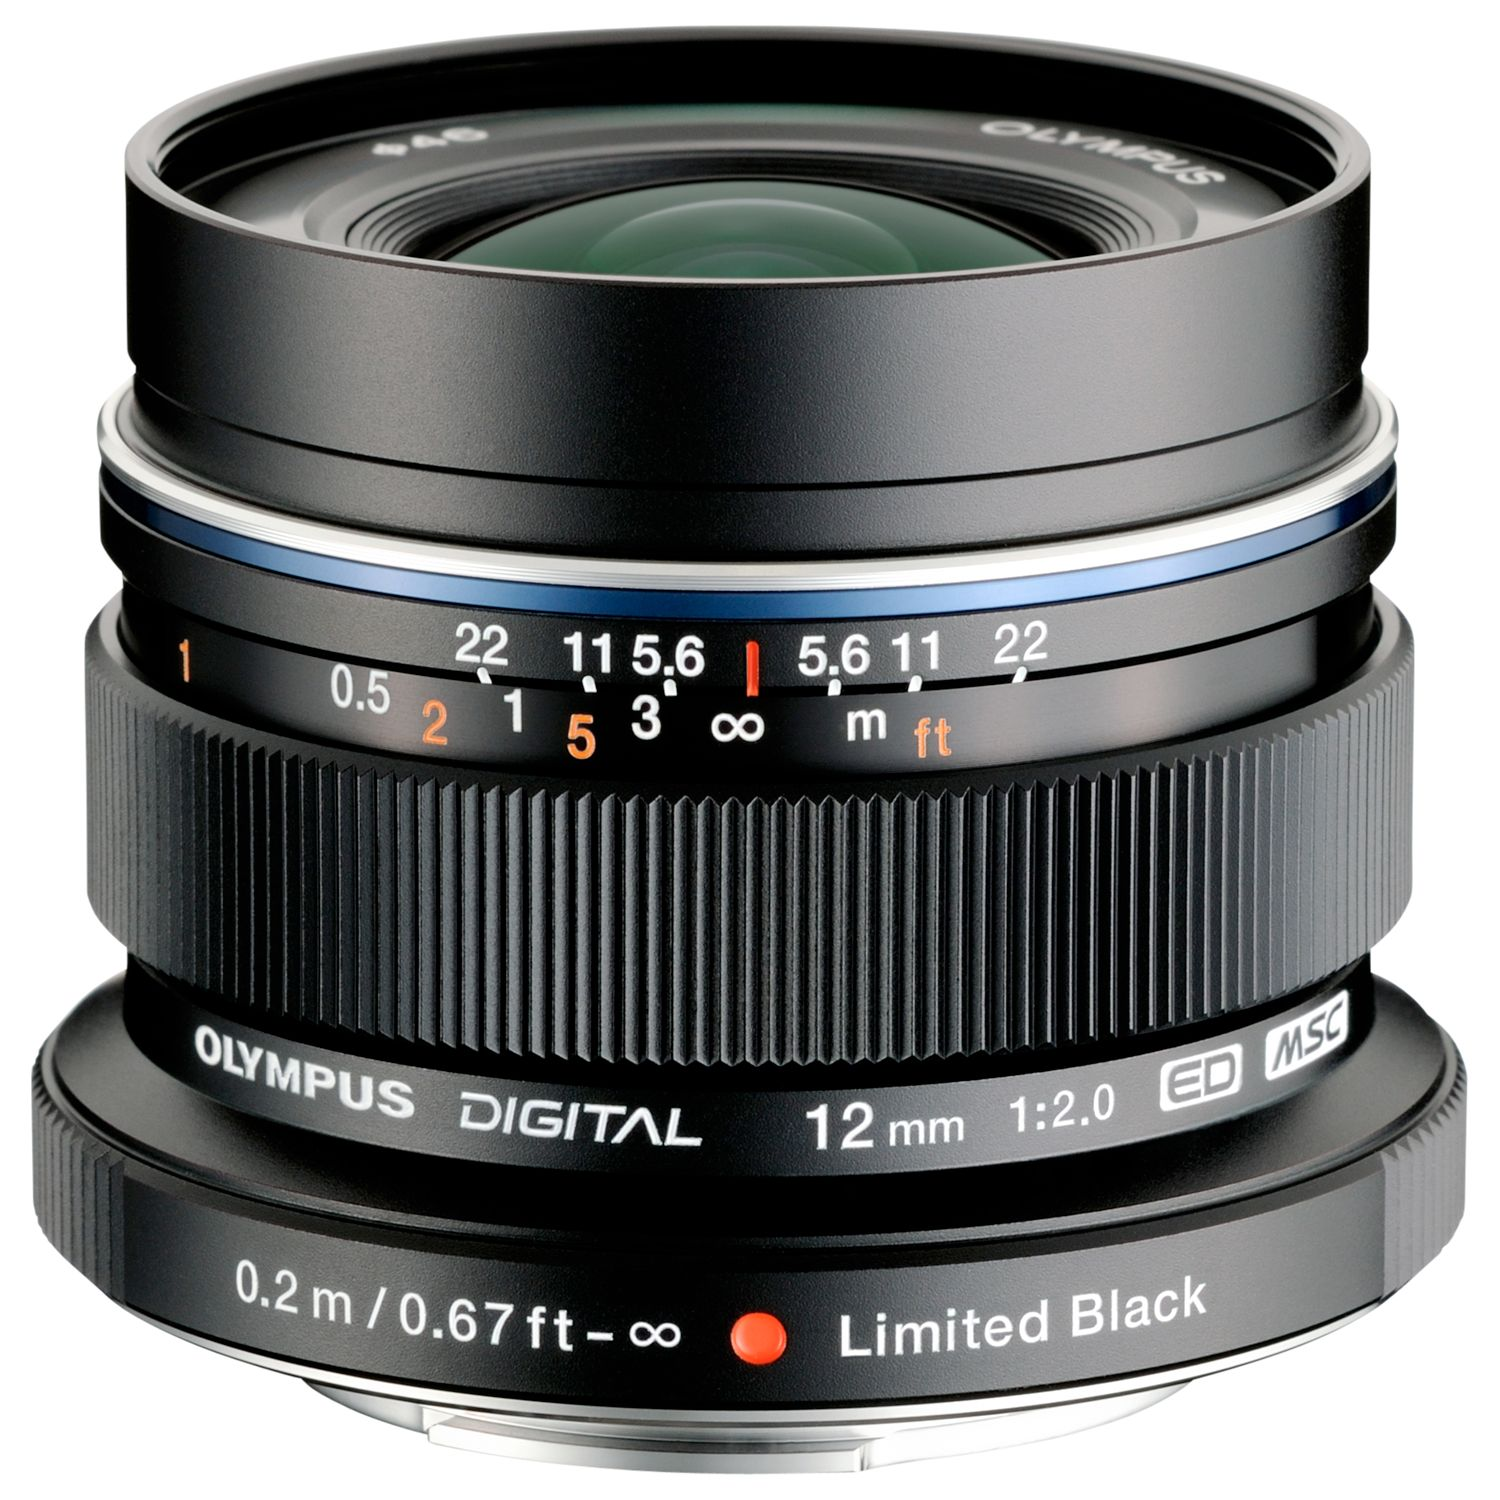 Olympus Olympus M.ZUIKO DIGITAL ED 12mm f/2.0 Compact Wide Angle Lens